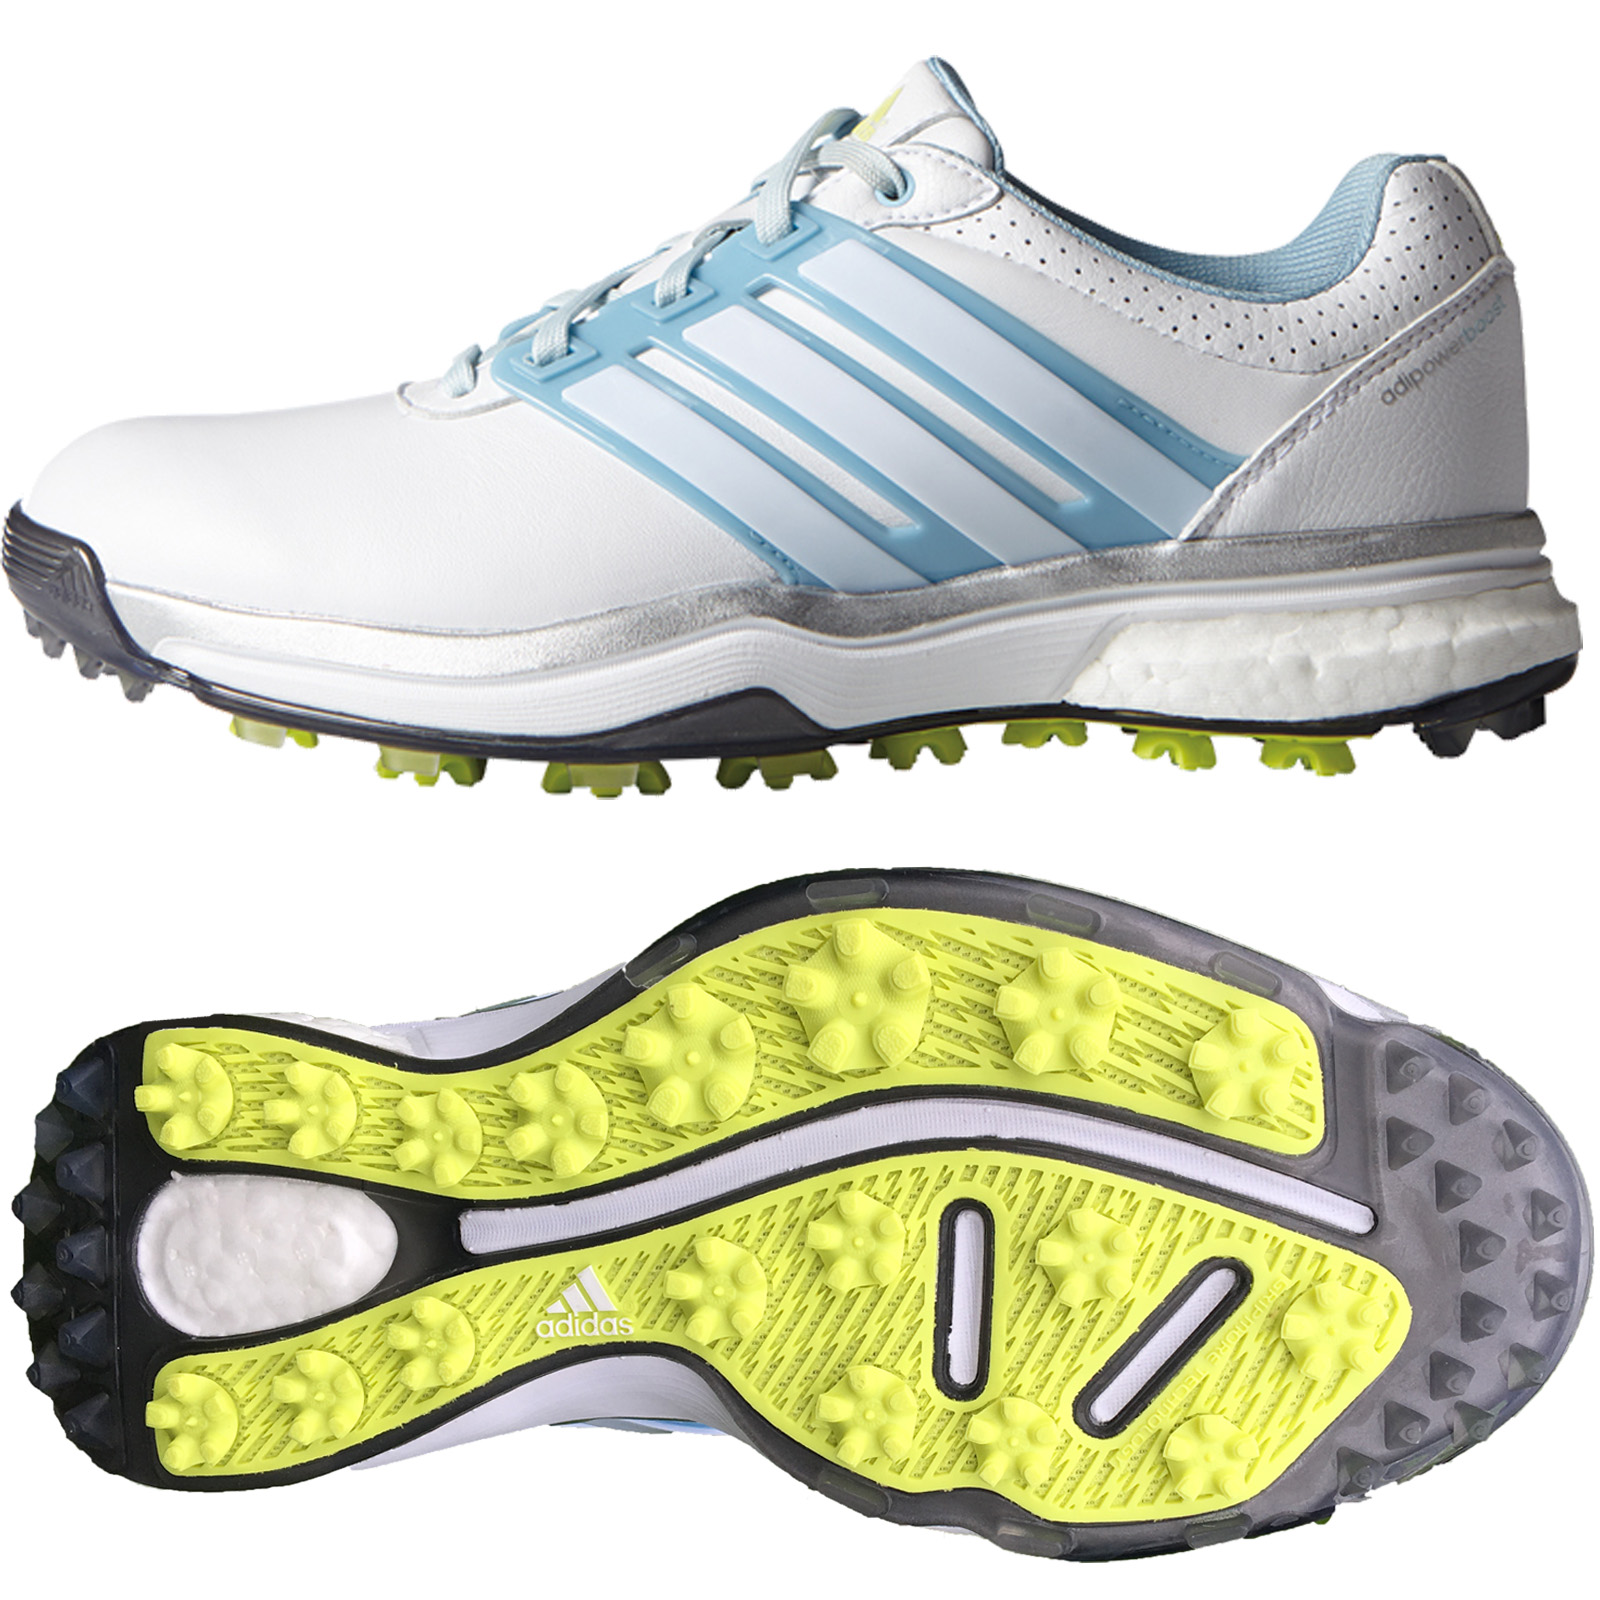 adidas Clearance Womens Adipower Boost II Waterproof Golf Shoes ... 53d401dce